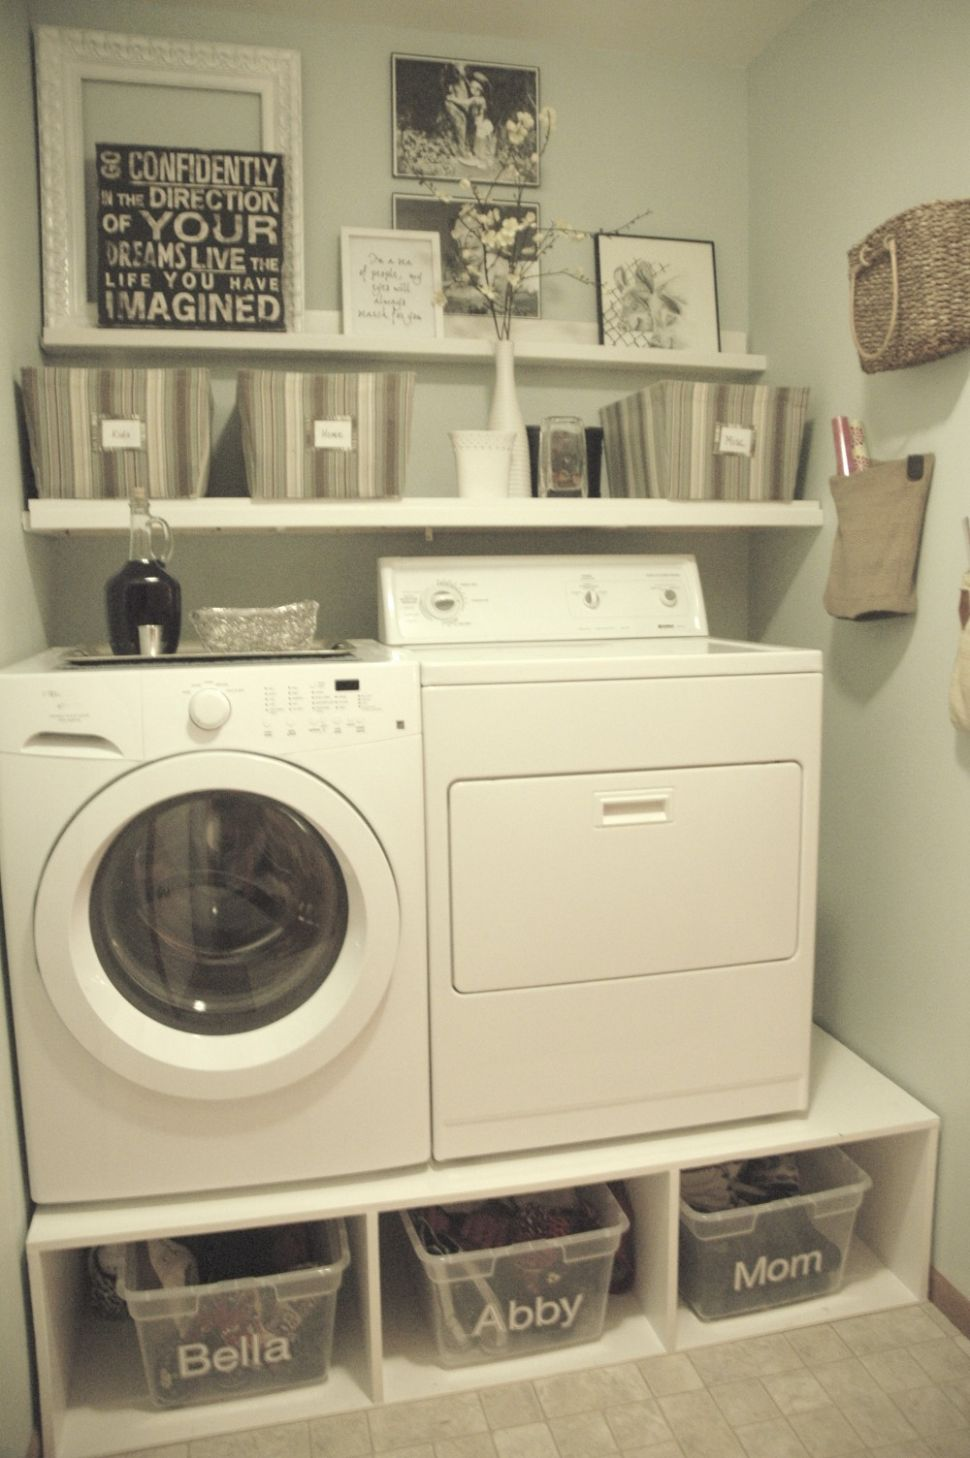 Remodelaholic | 12+ Ideas for Small Laundry Spaces - mudroom laundry room makeover ideas